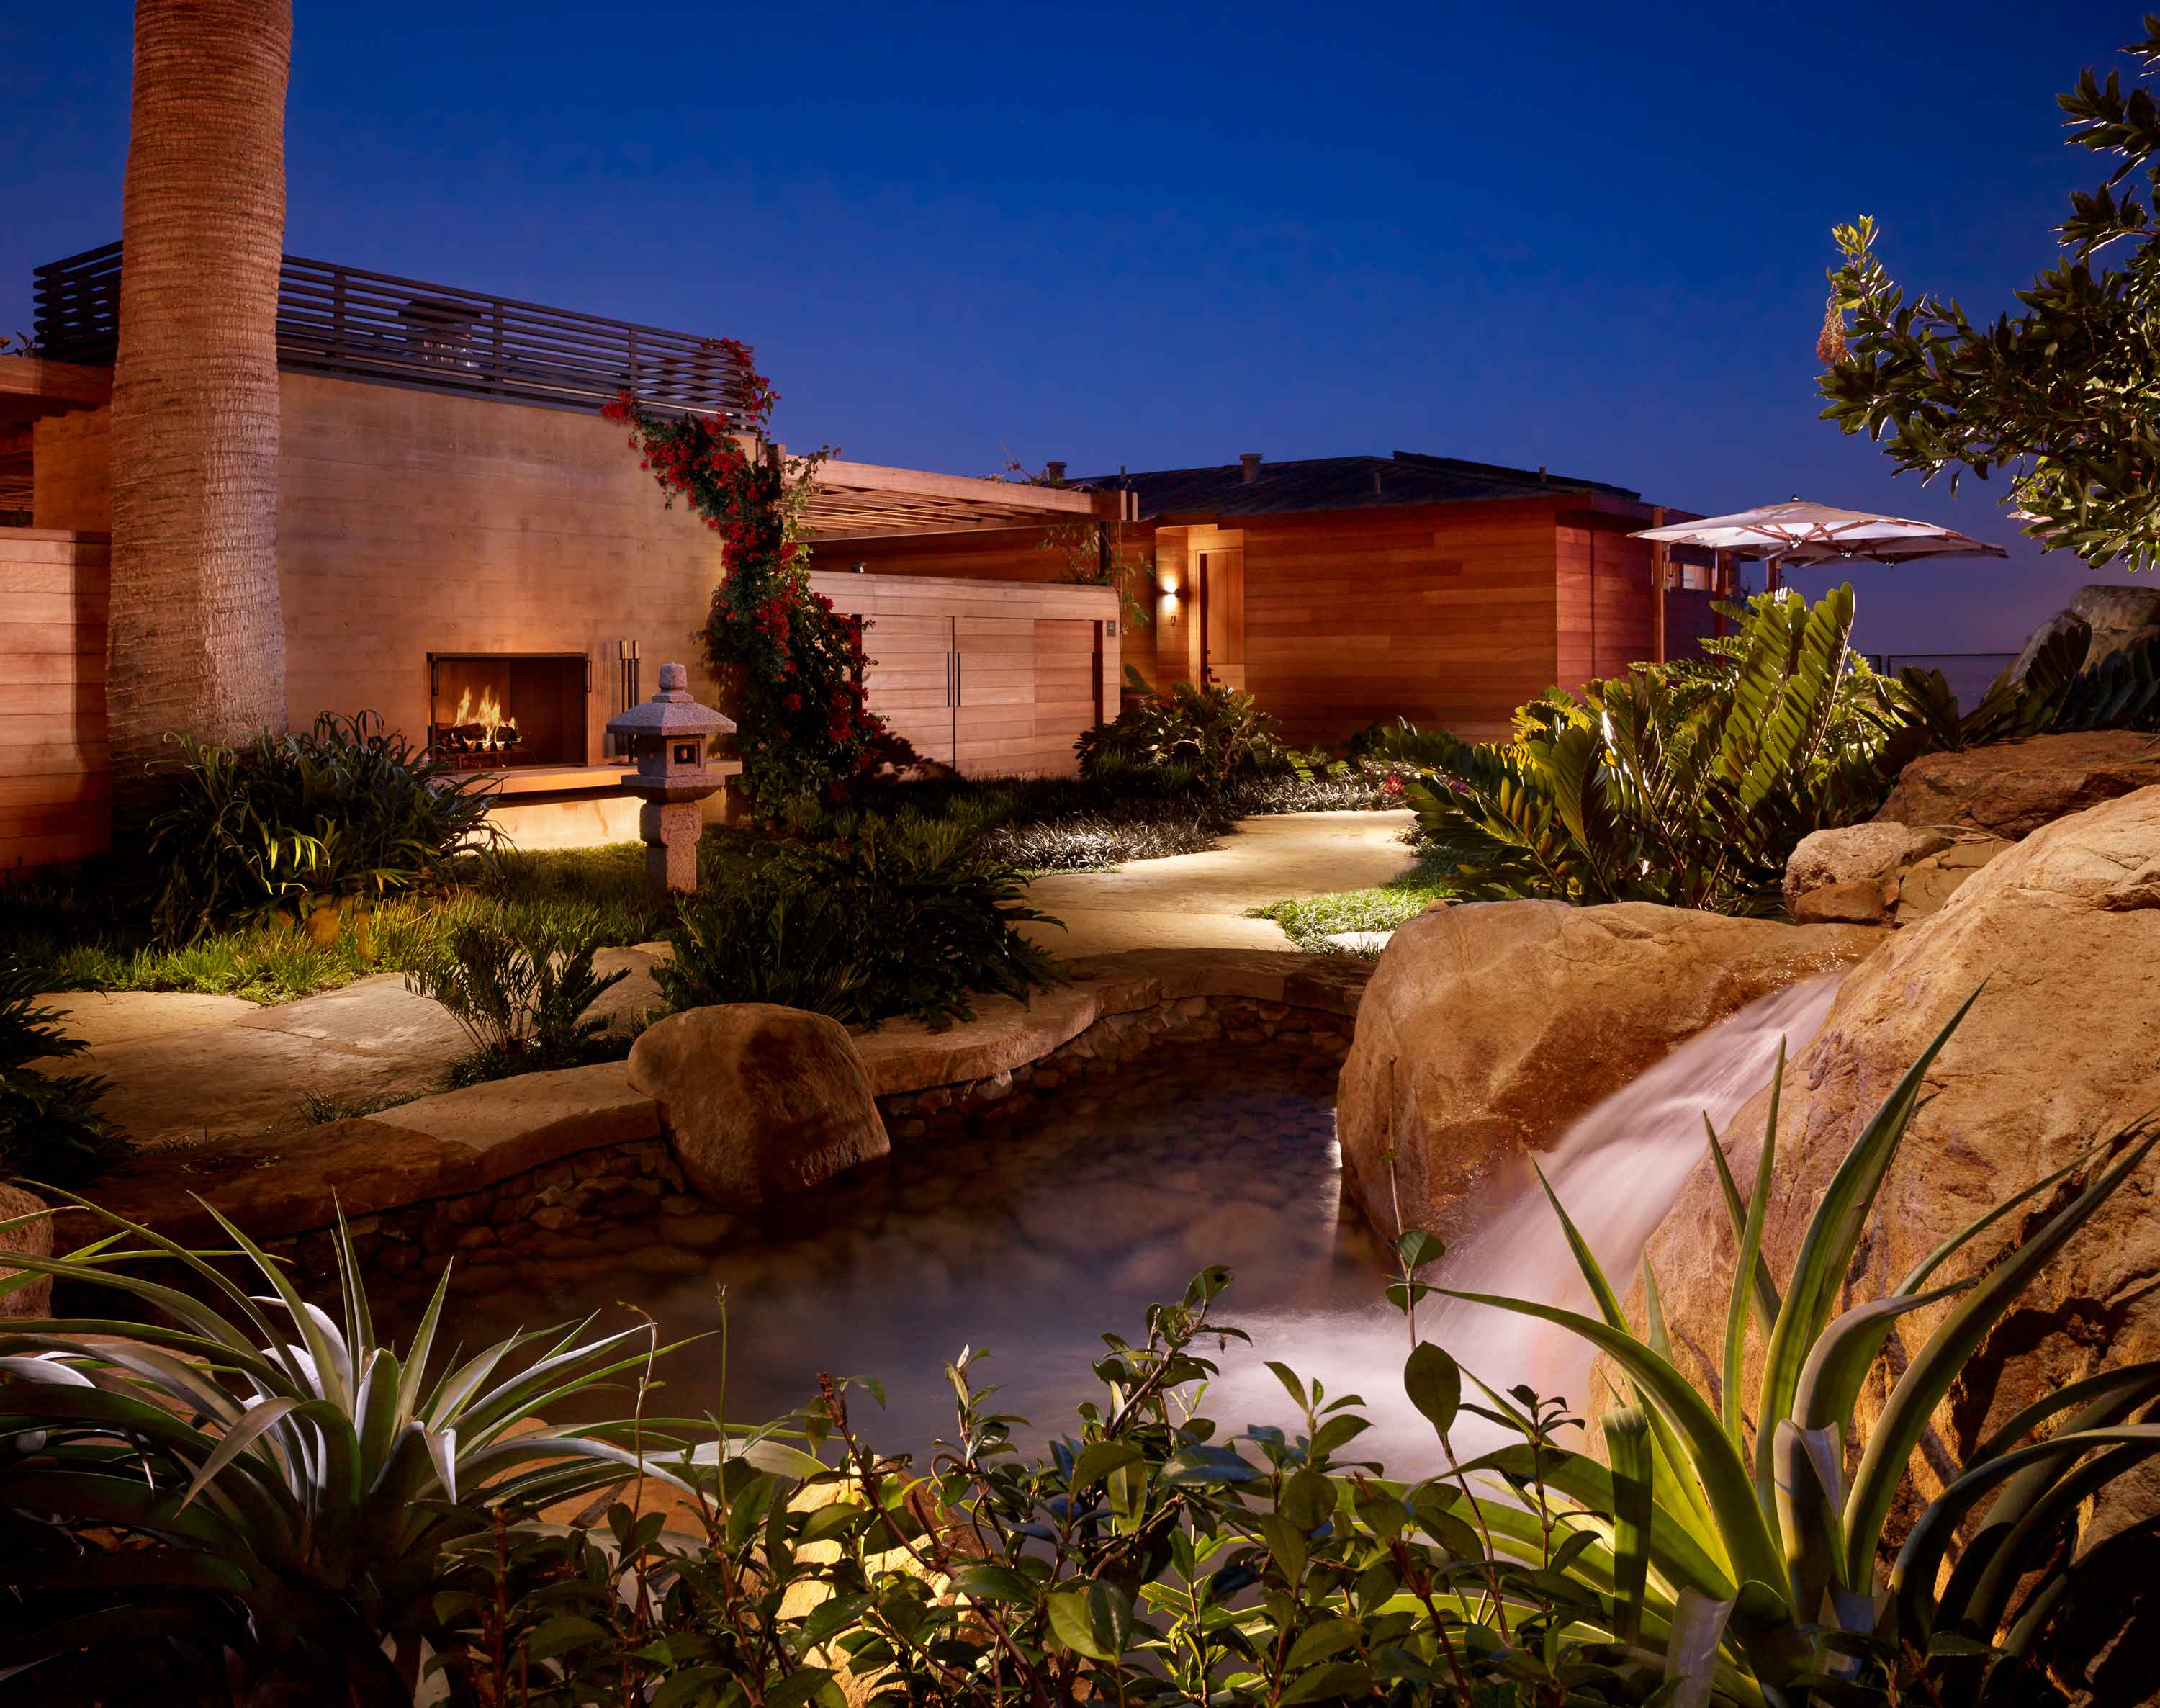 Evening shot of the courtyard at Nobu Ryokan Malibu